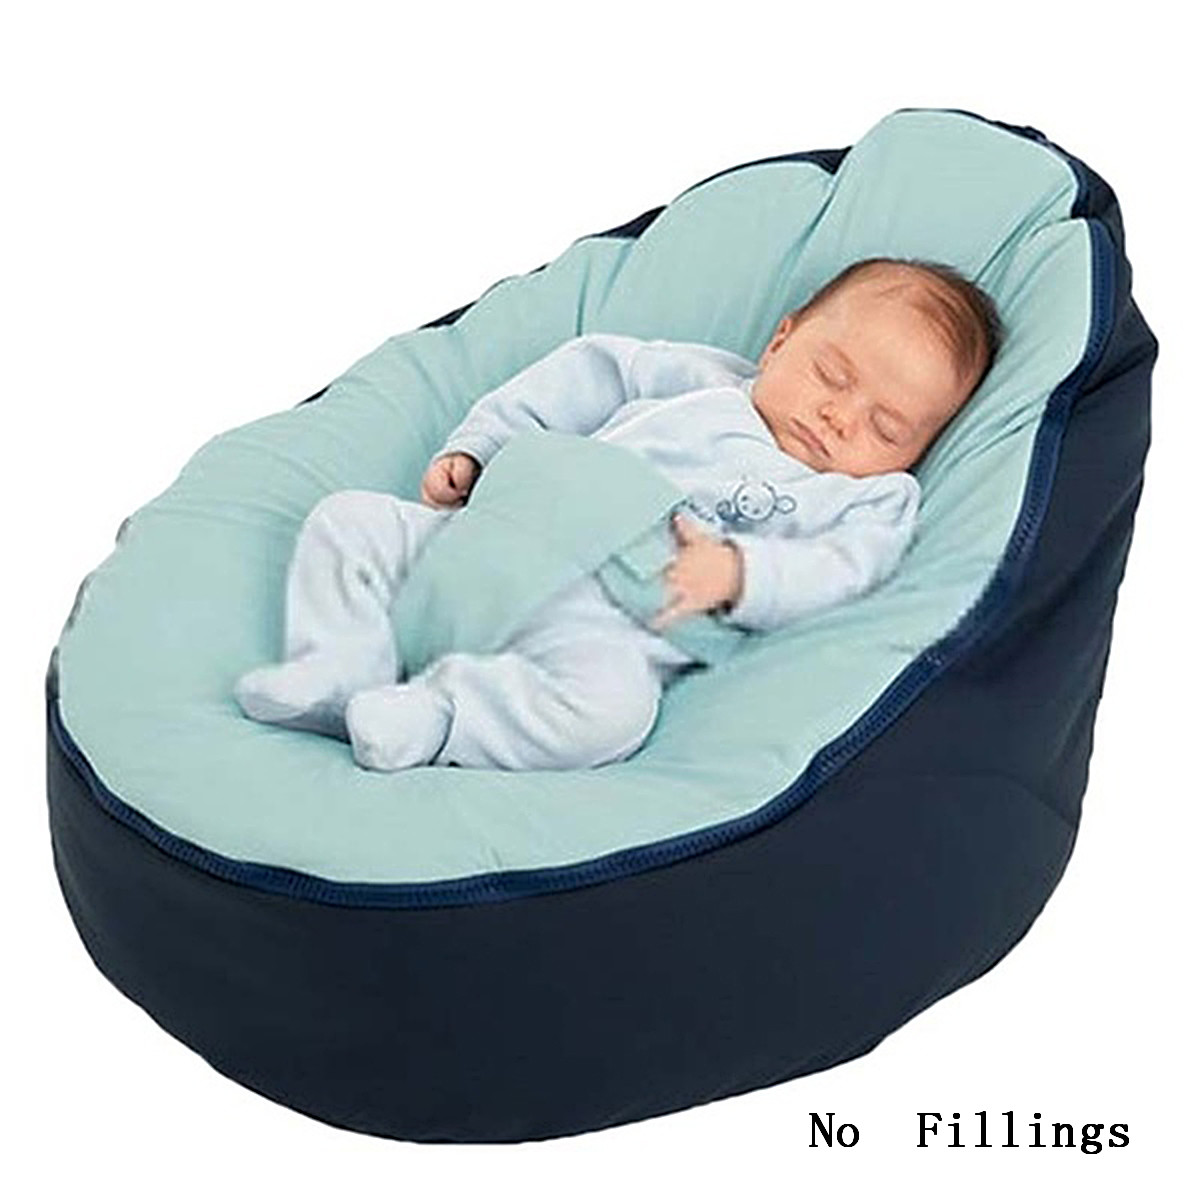 Soft Baby Chair Infant Bean Bag Bed Cover Without Filler Pouf For Feeding Baby Snuggle Bed With Belt For Safety Protection